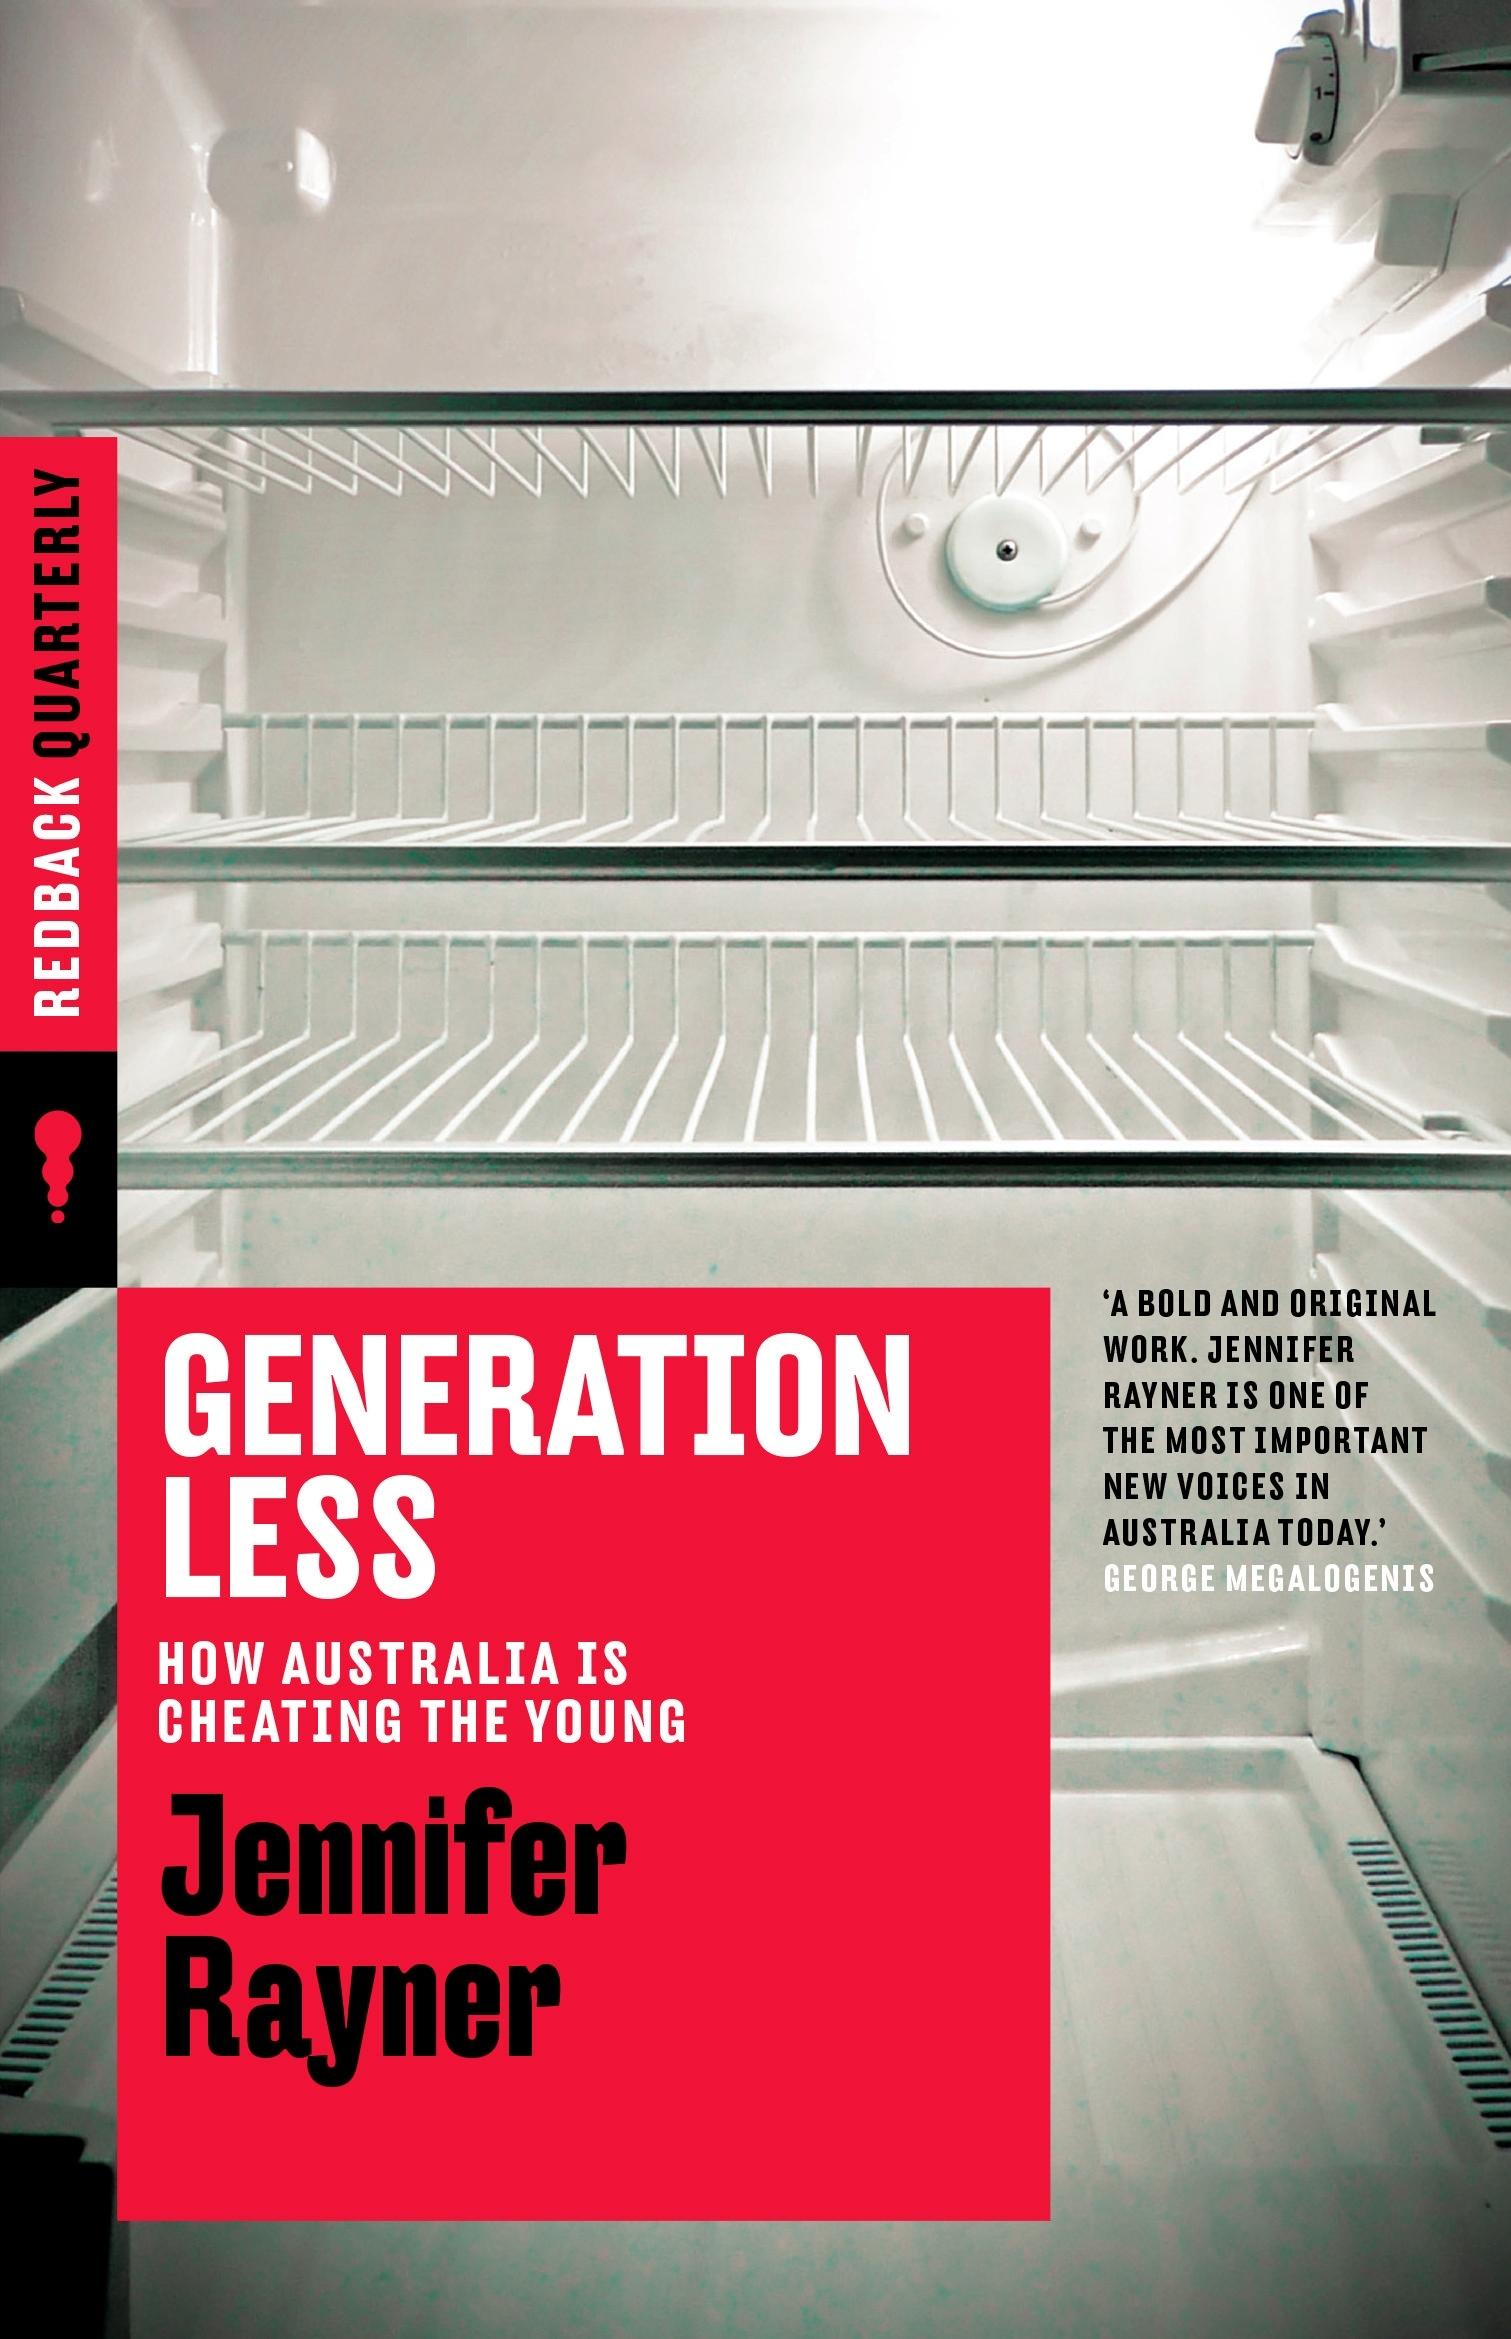 Generation Less: How Australia is Cheating the Young